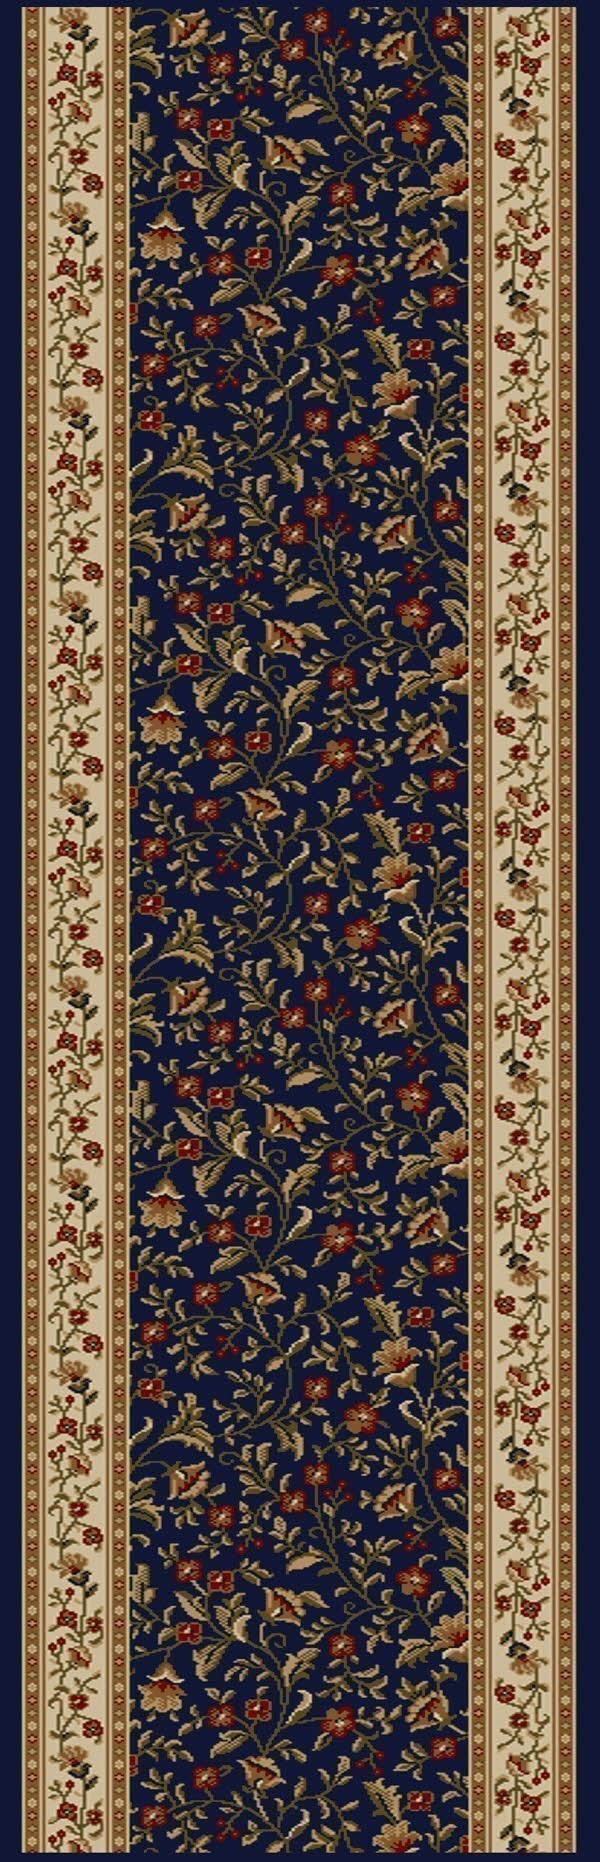 Rugs Direct Cagliari Floral Rugs Rugs Direct